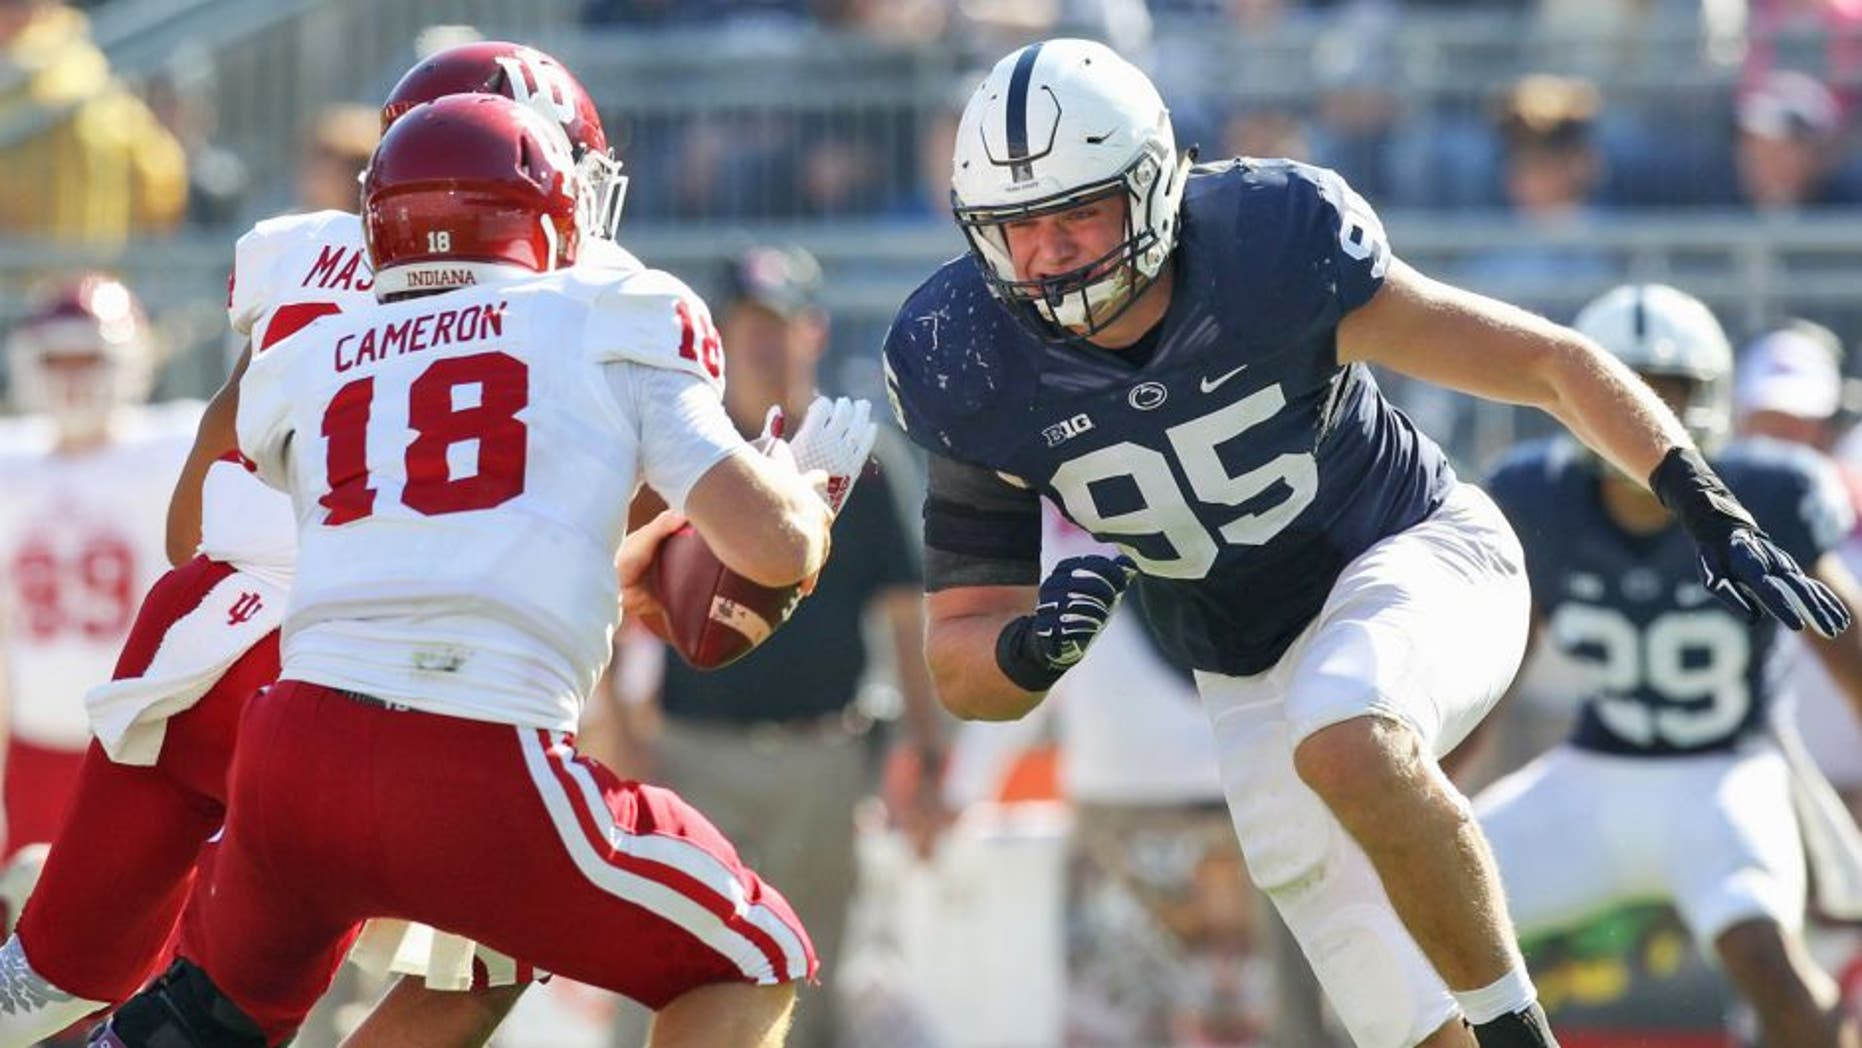 Oct 10, 2015; University Park, PA, USA; Penn State Nittany Lions defensive end Carl Nassib (95) pressures Indiana Hoosiers quarterback Danny Cameron (18) during the fourth quarter at Beaver Stadium. Penn State defeated Indiana 29-7. Mandatory Credit: Matthew O'Haren-USA TODAY Sports